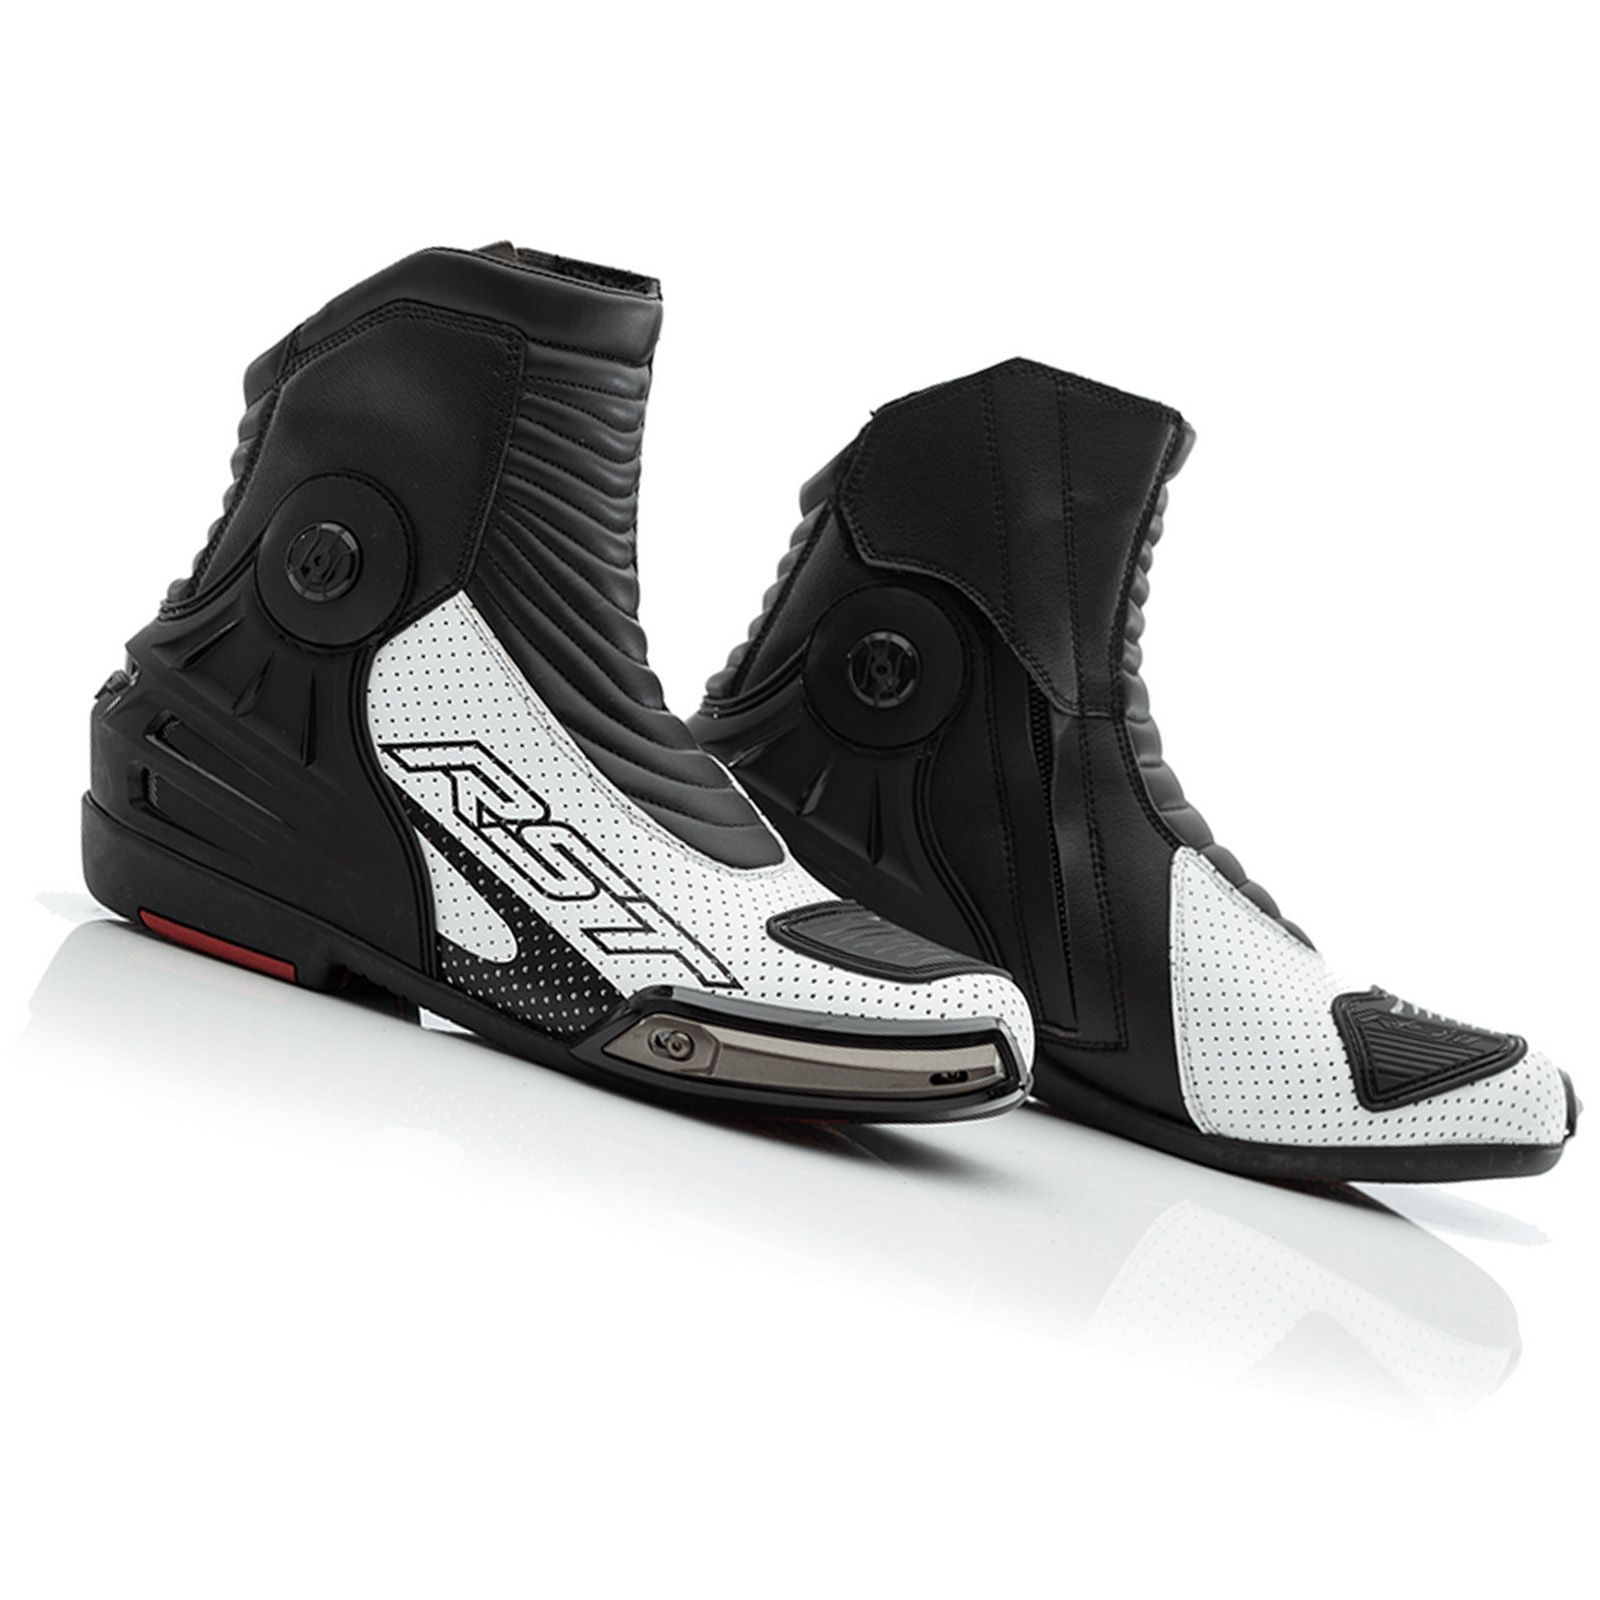 RST Motorcycle Sports Boots Track Tech Evo 2101 Adult Racing CE Approved Armour Motorbike Race Boots